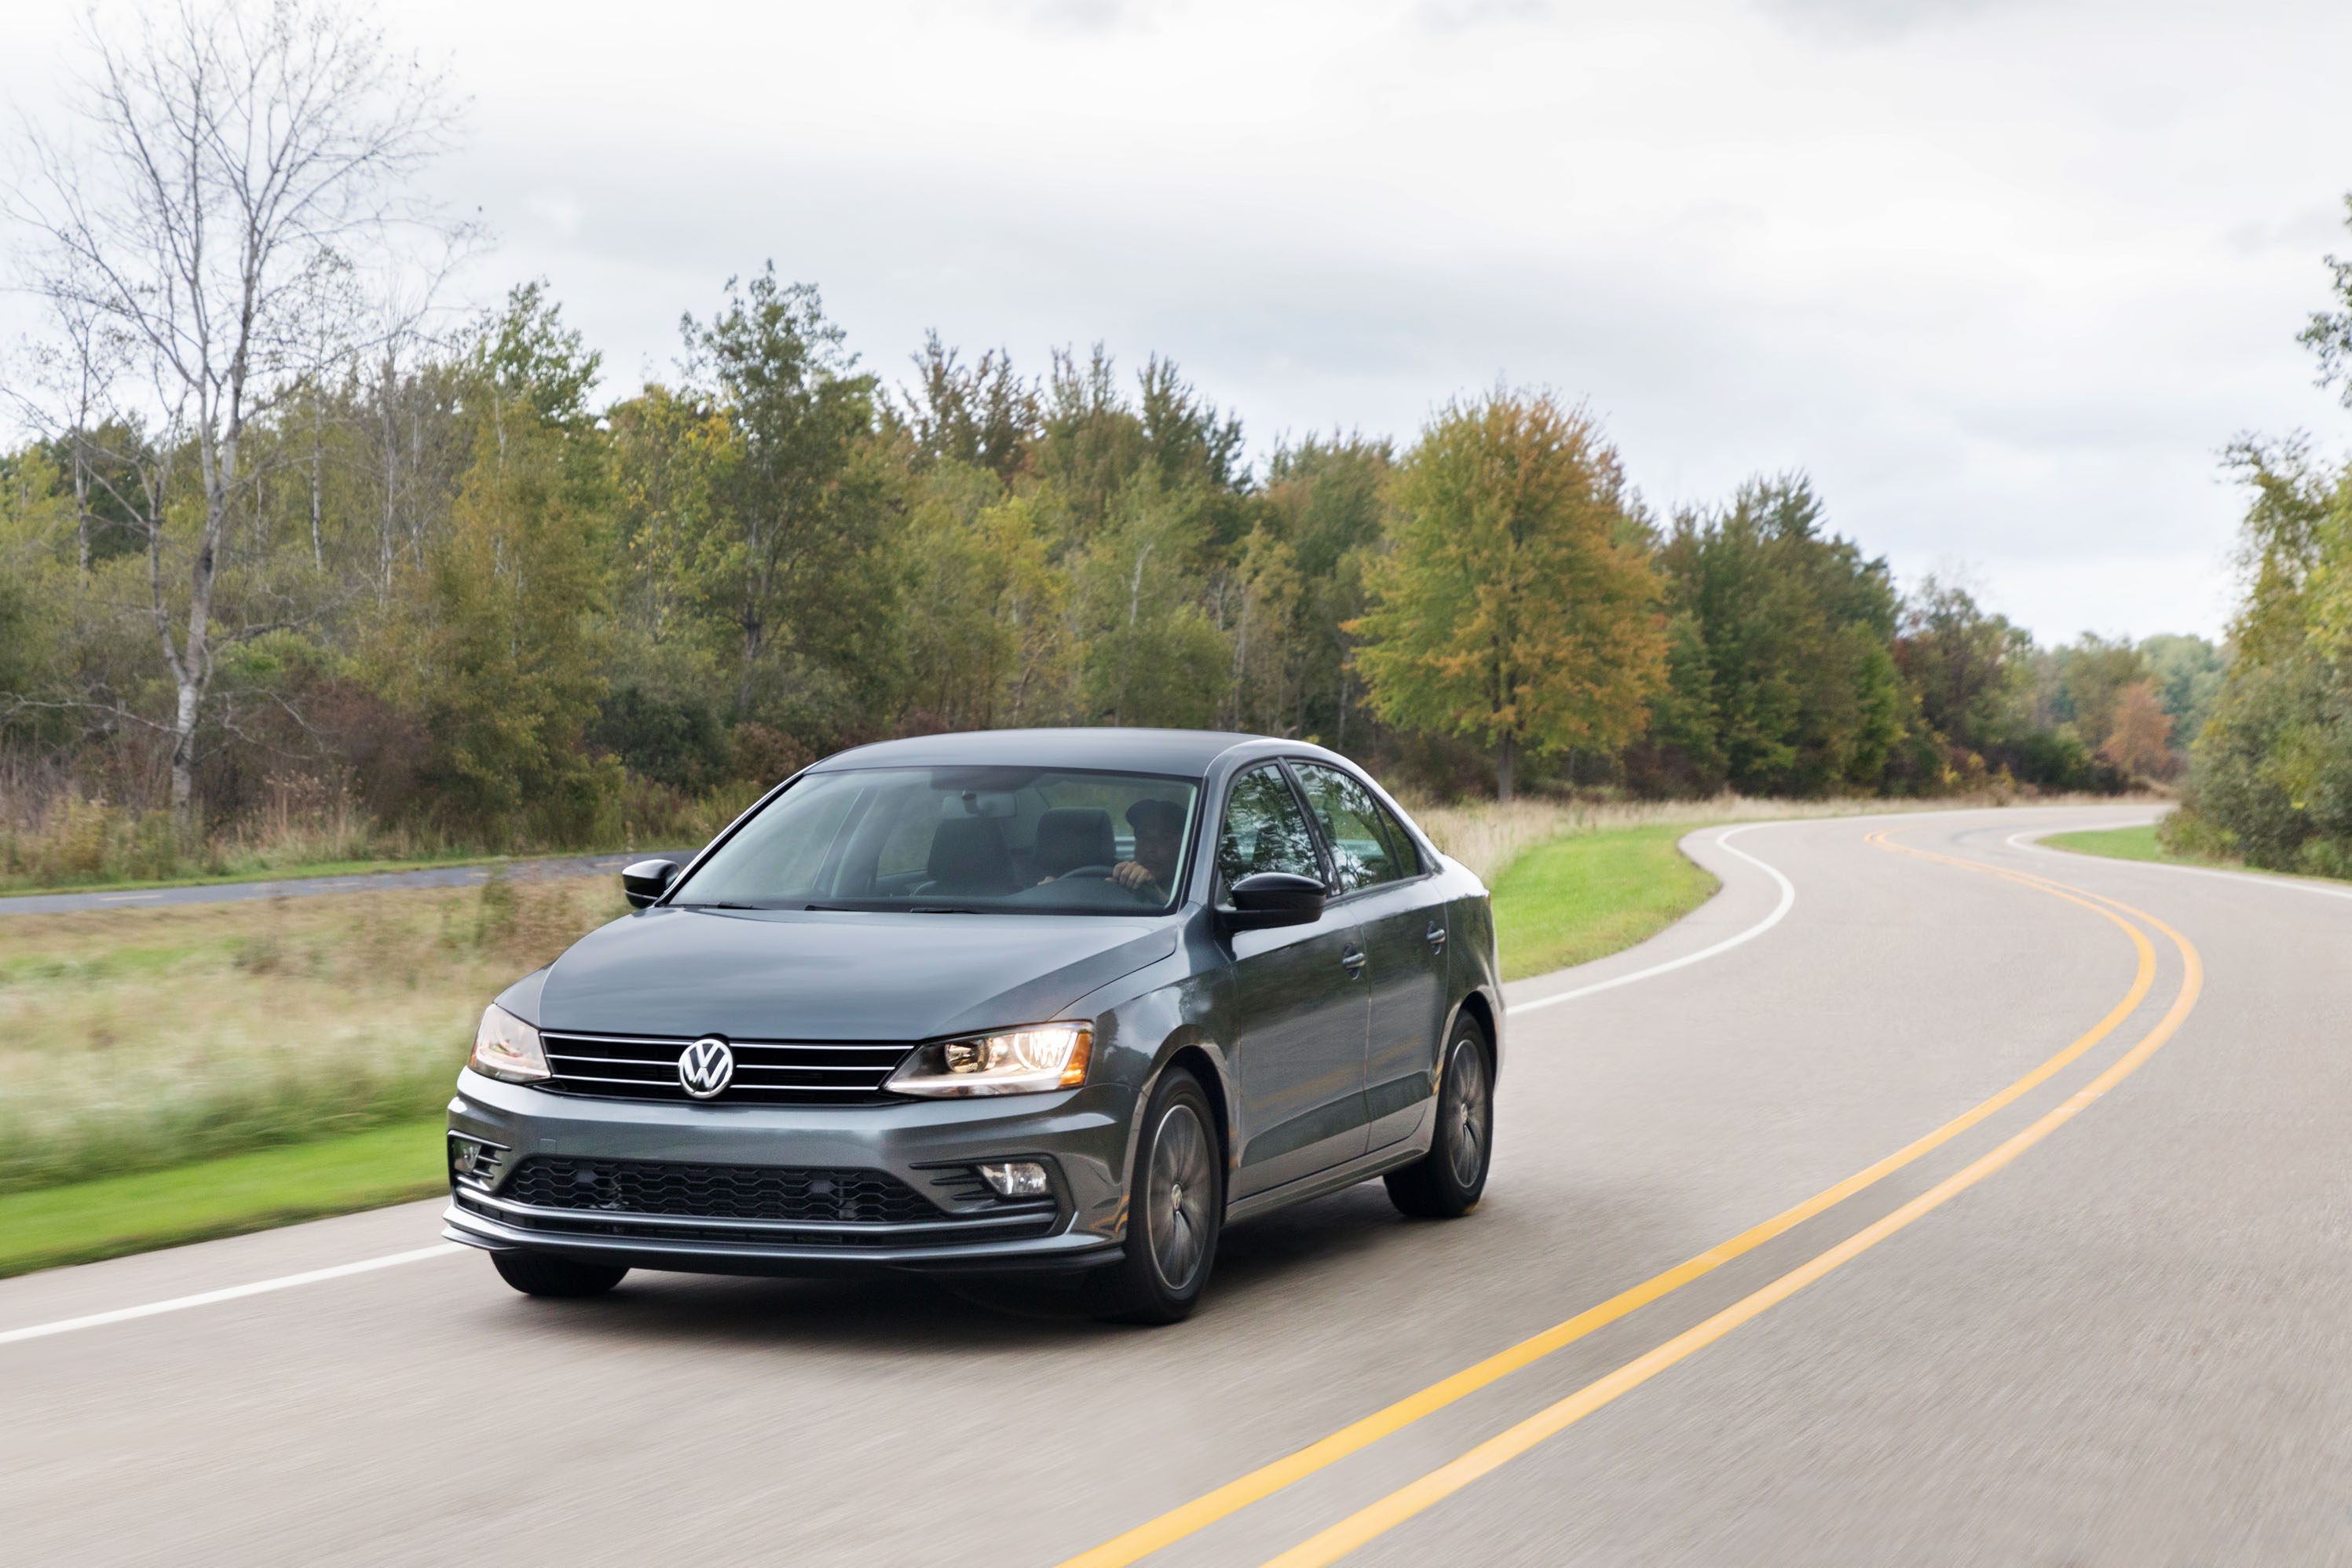 2018 Volkswagen Jetta Vw Review Ratings Specs Prices And Photos The Car Connection